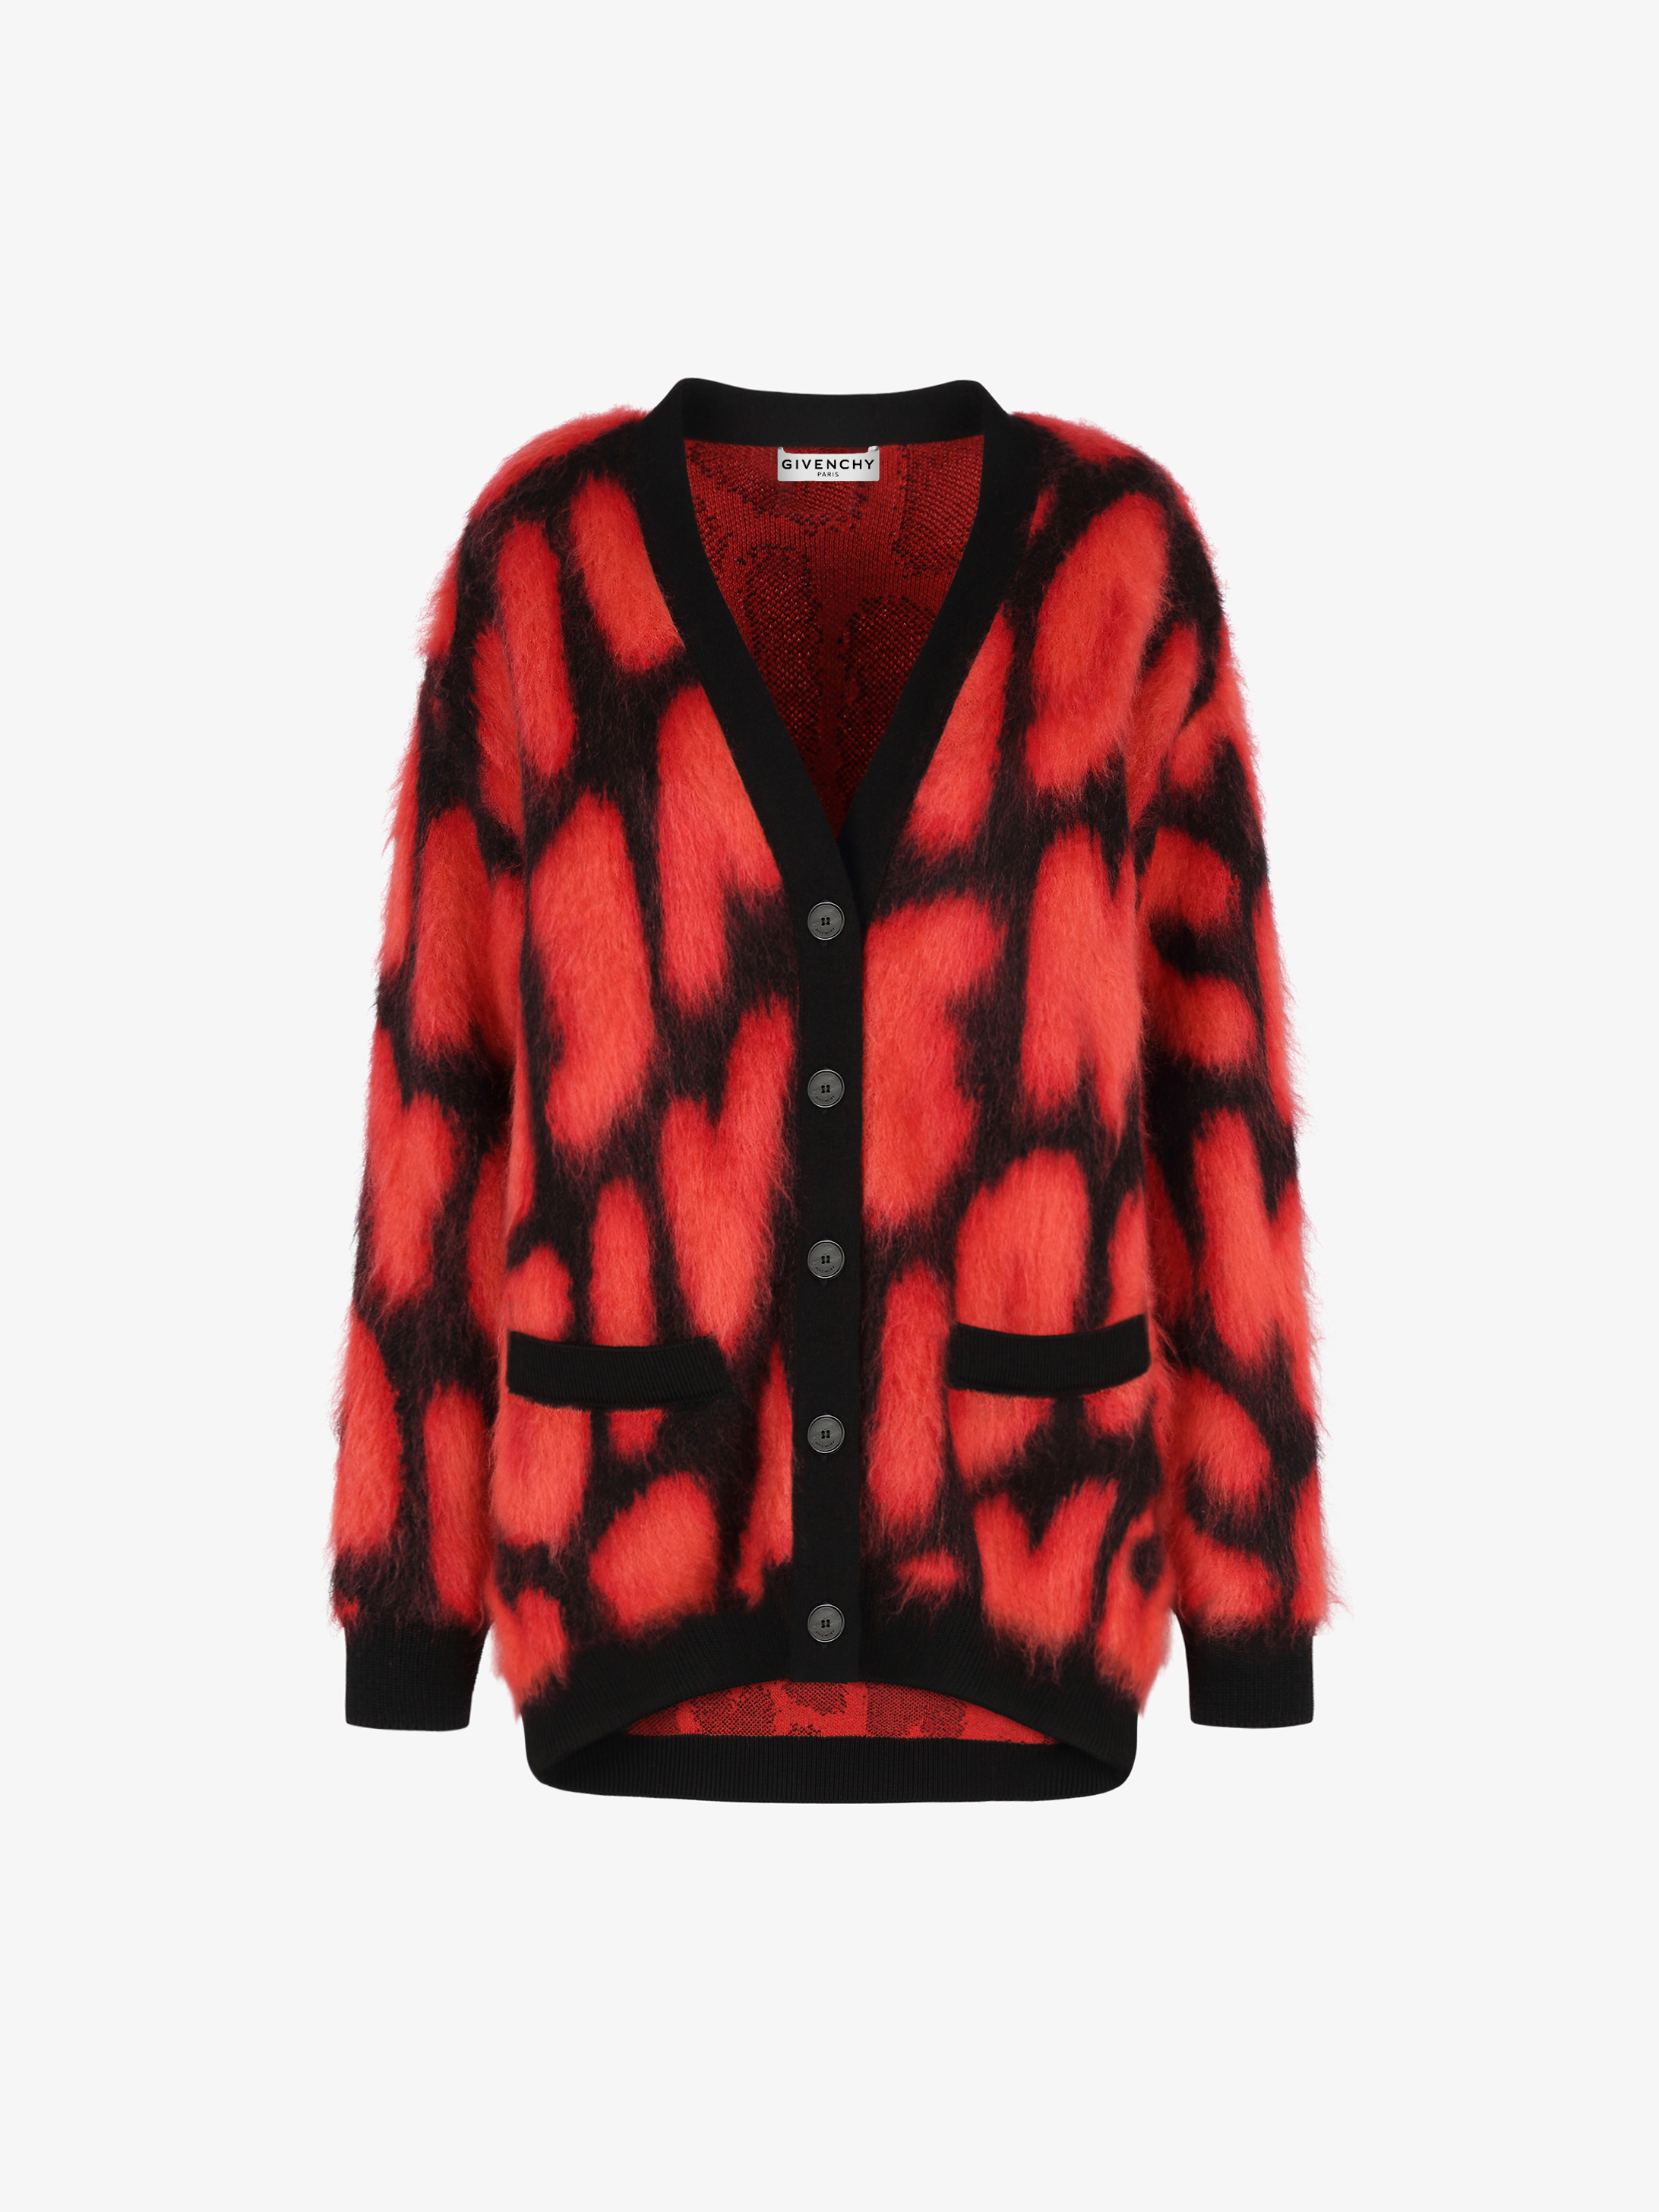 GIVENCHY cardigan in wool and mohair